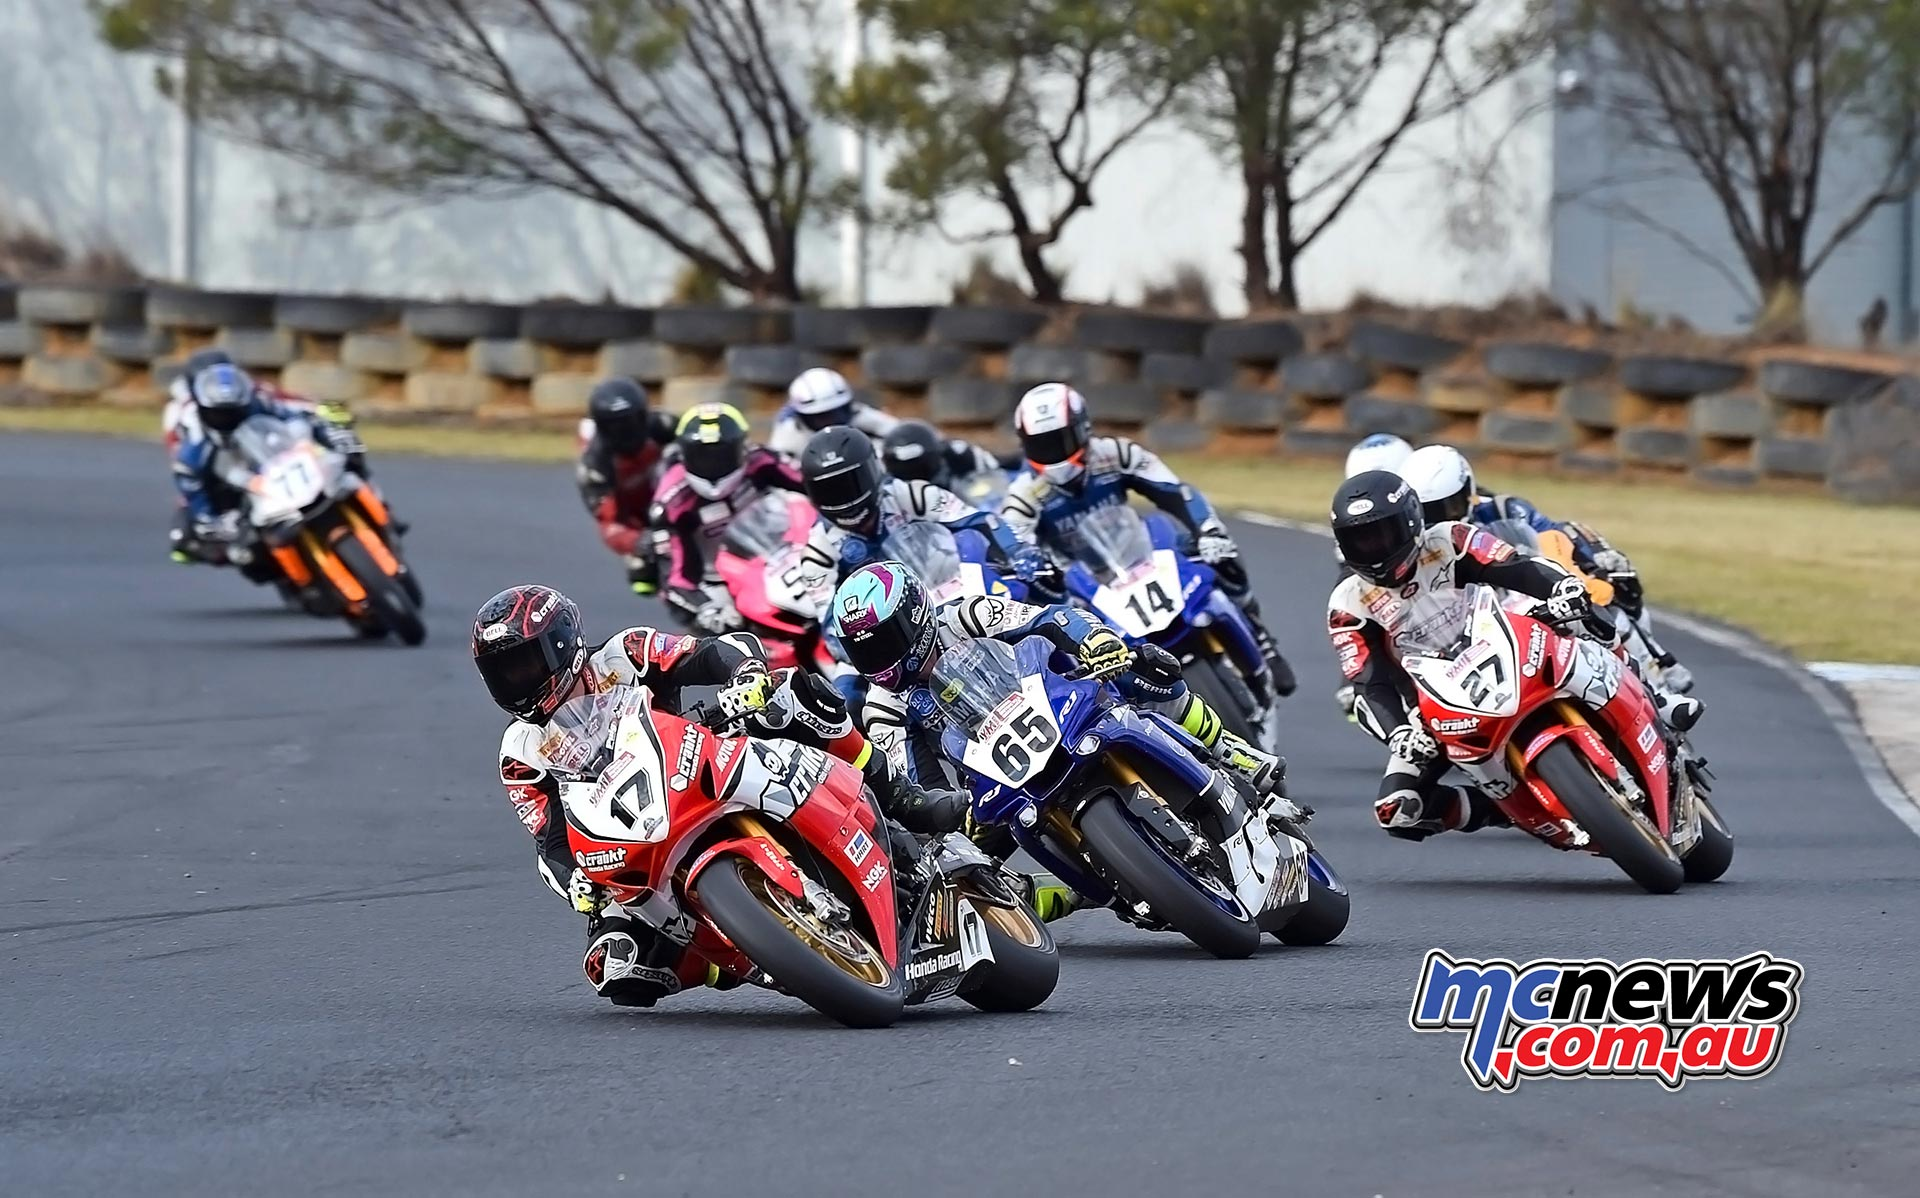 ASBK 2016 -Morgan Park - Superbike Race Two - Image by Keith Muir - Troy Herfoss leads the field away